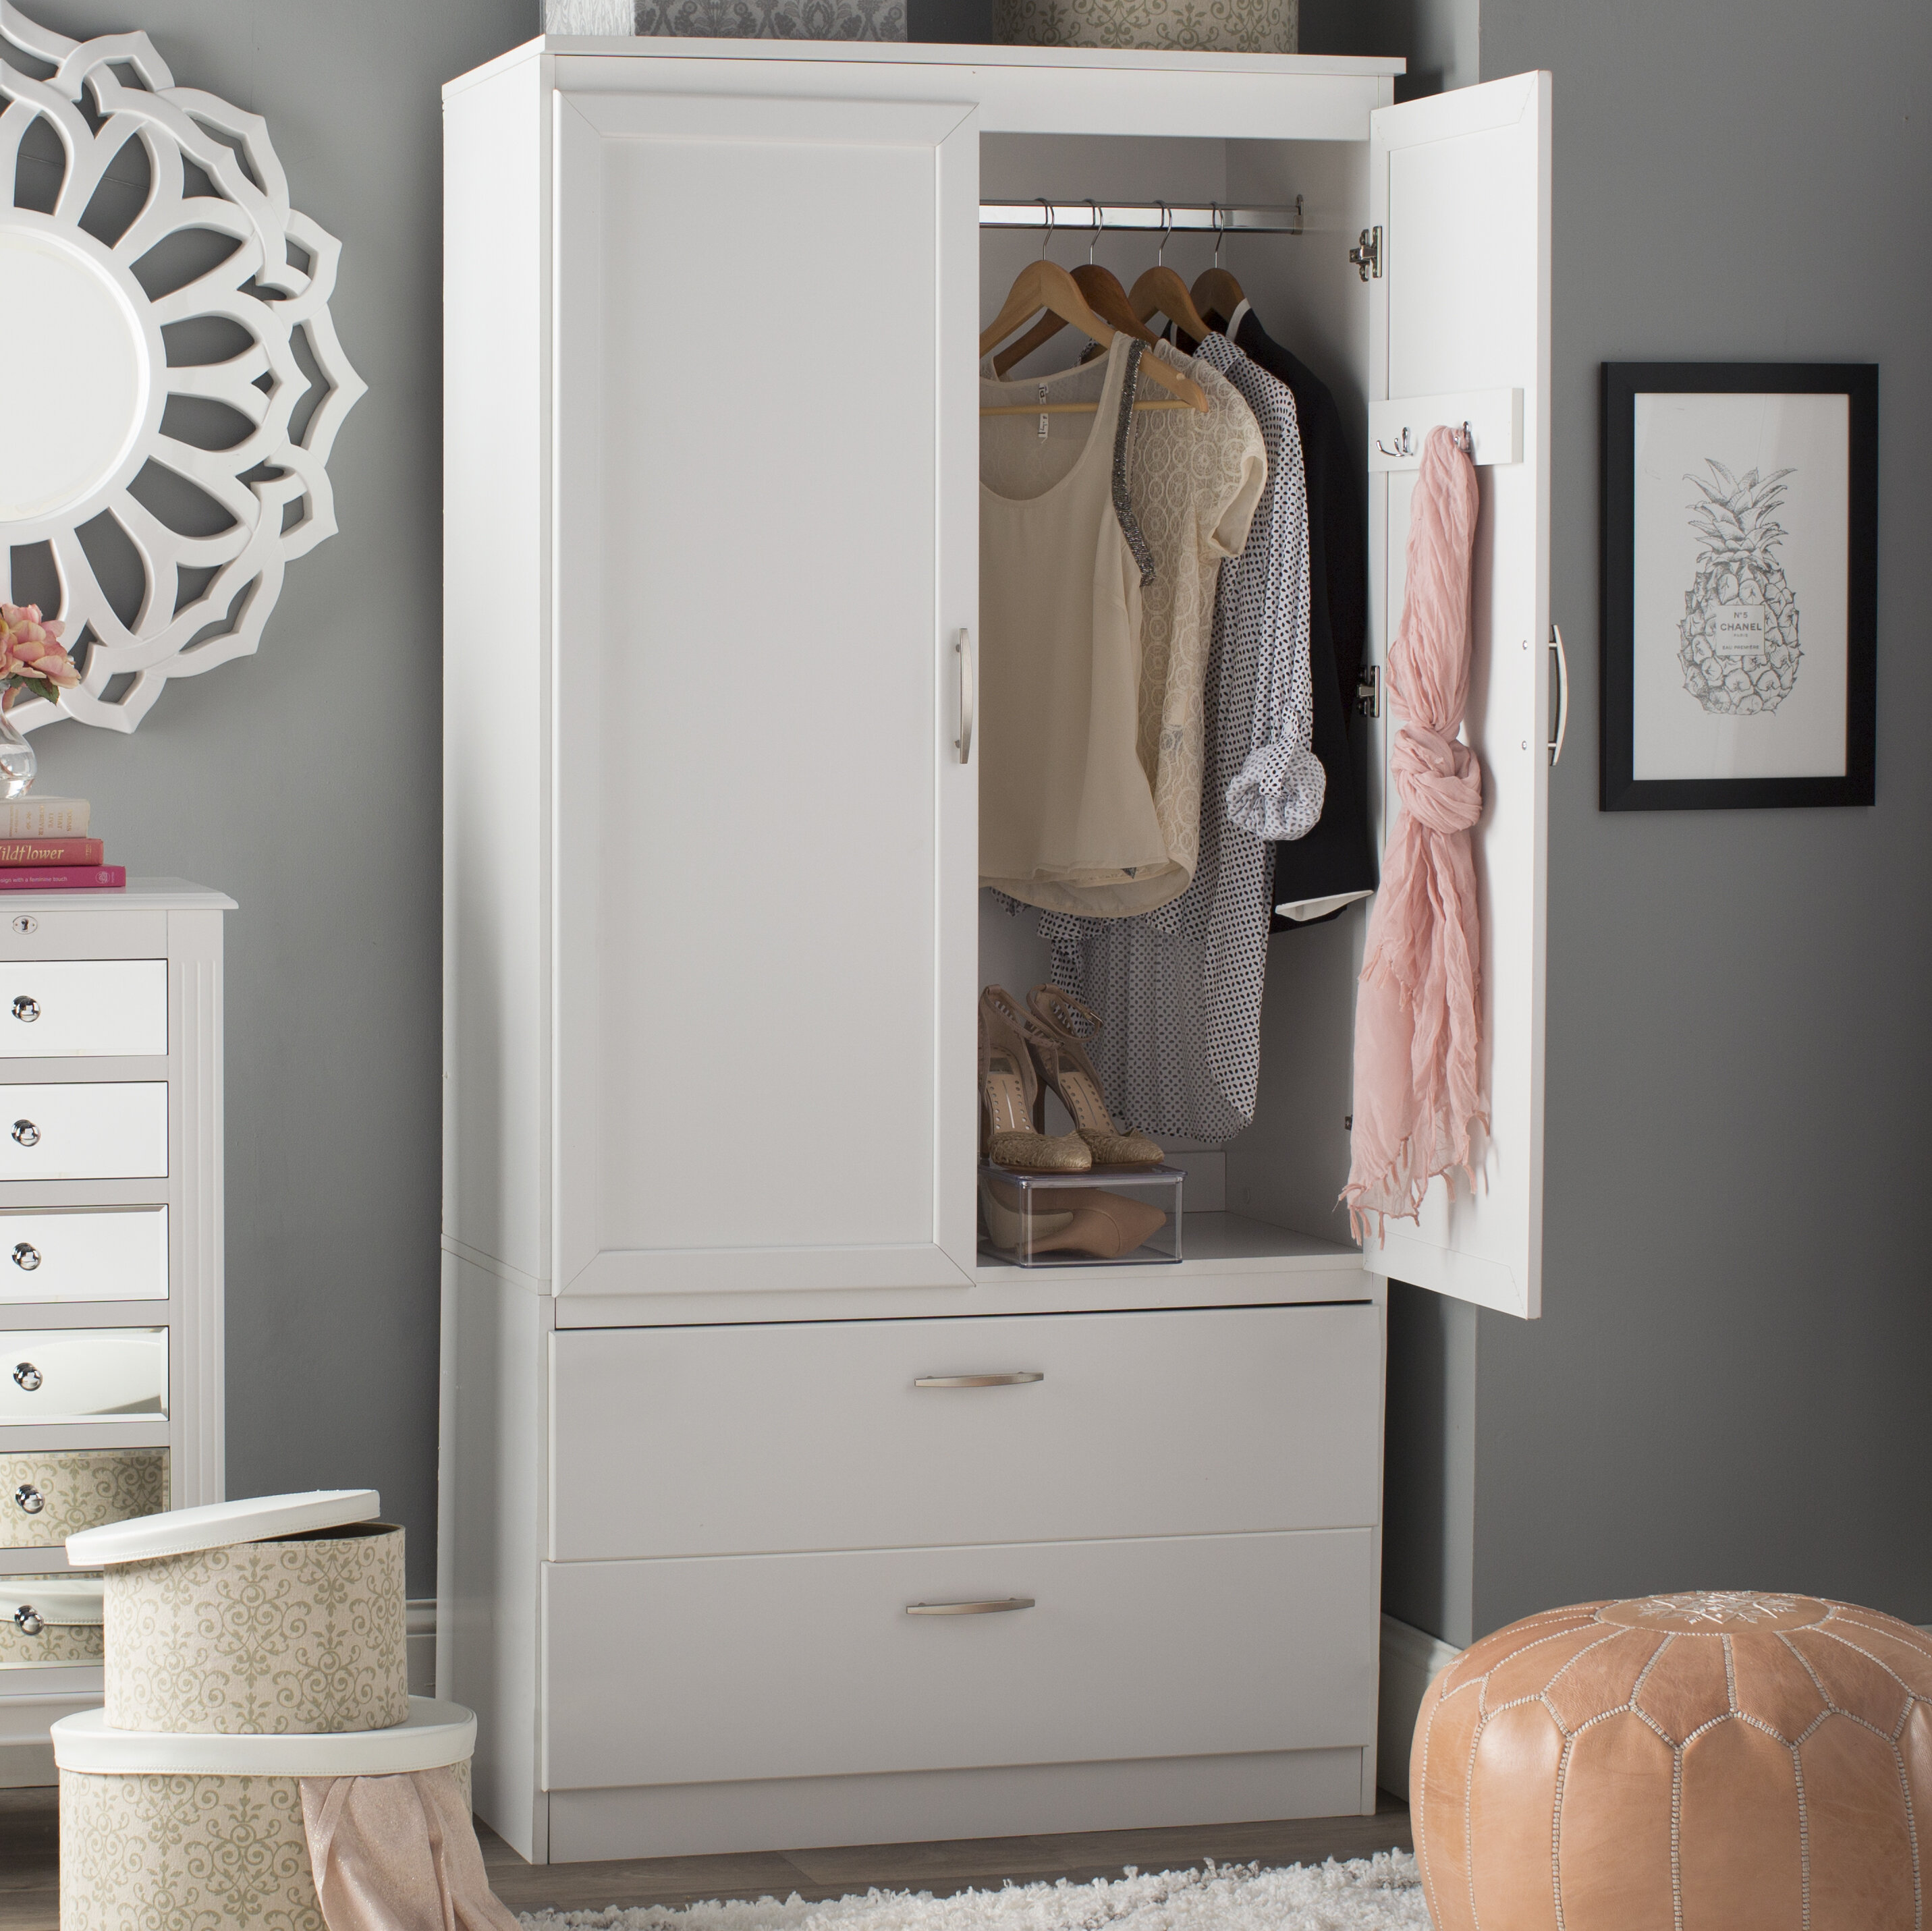 armoire unique section wood wardrobe carved cm world floral market frais white of stock collection mango elvarli